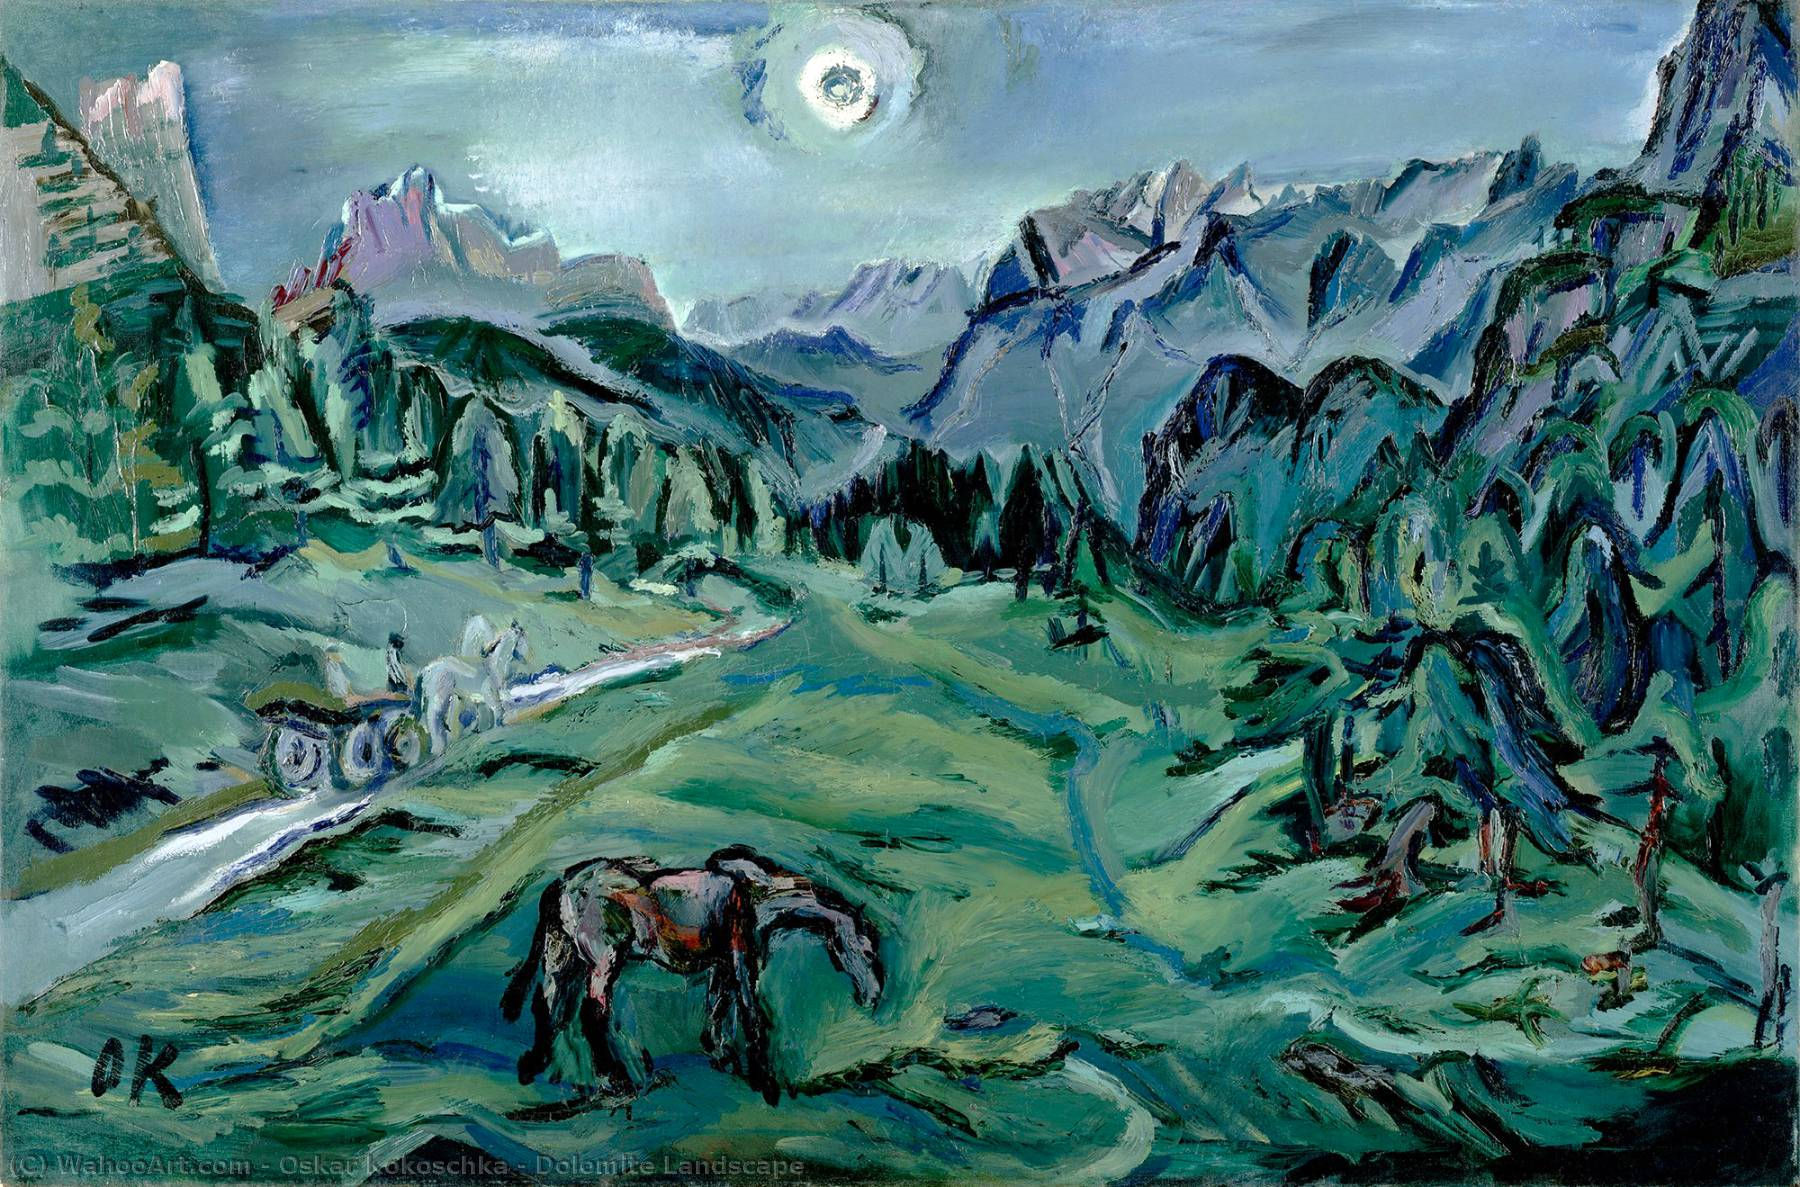 Dolomite Landscape, 1913 by Oskar Kokoschka (1886-1980, Croatia) | Famous Paintings Reproductions | WahooArt.com